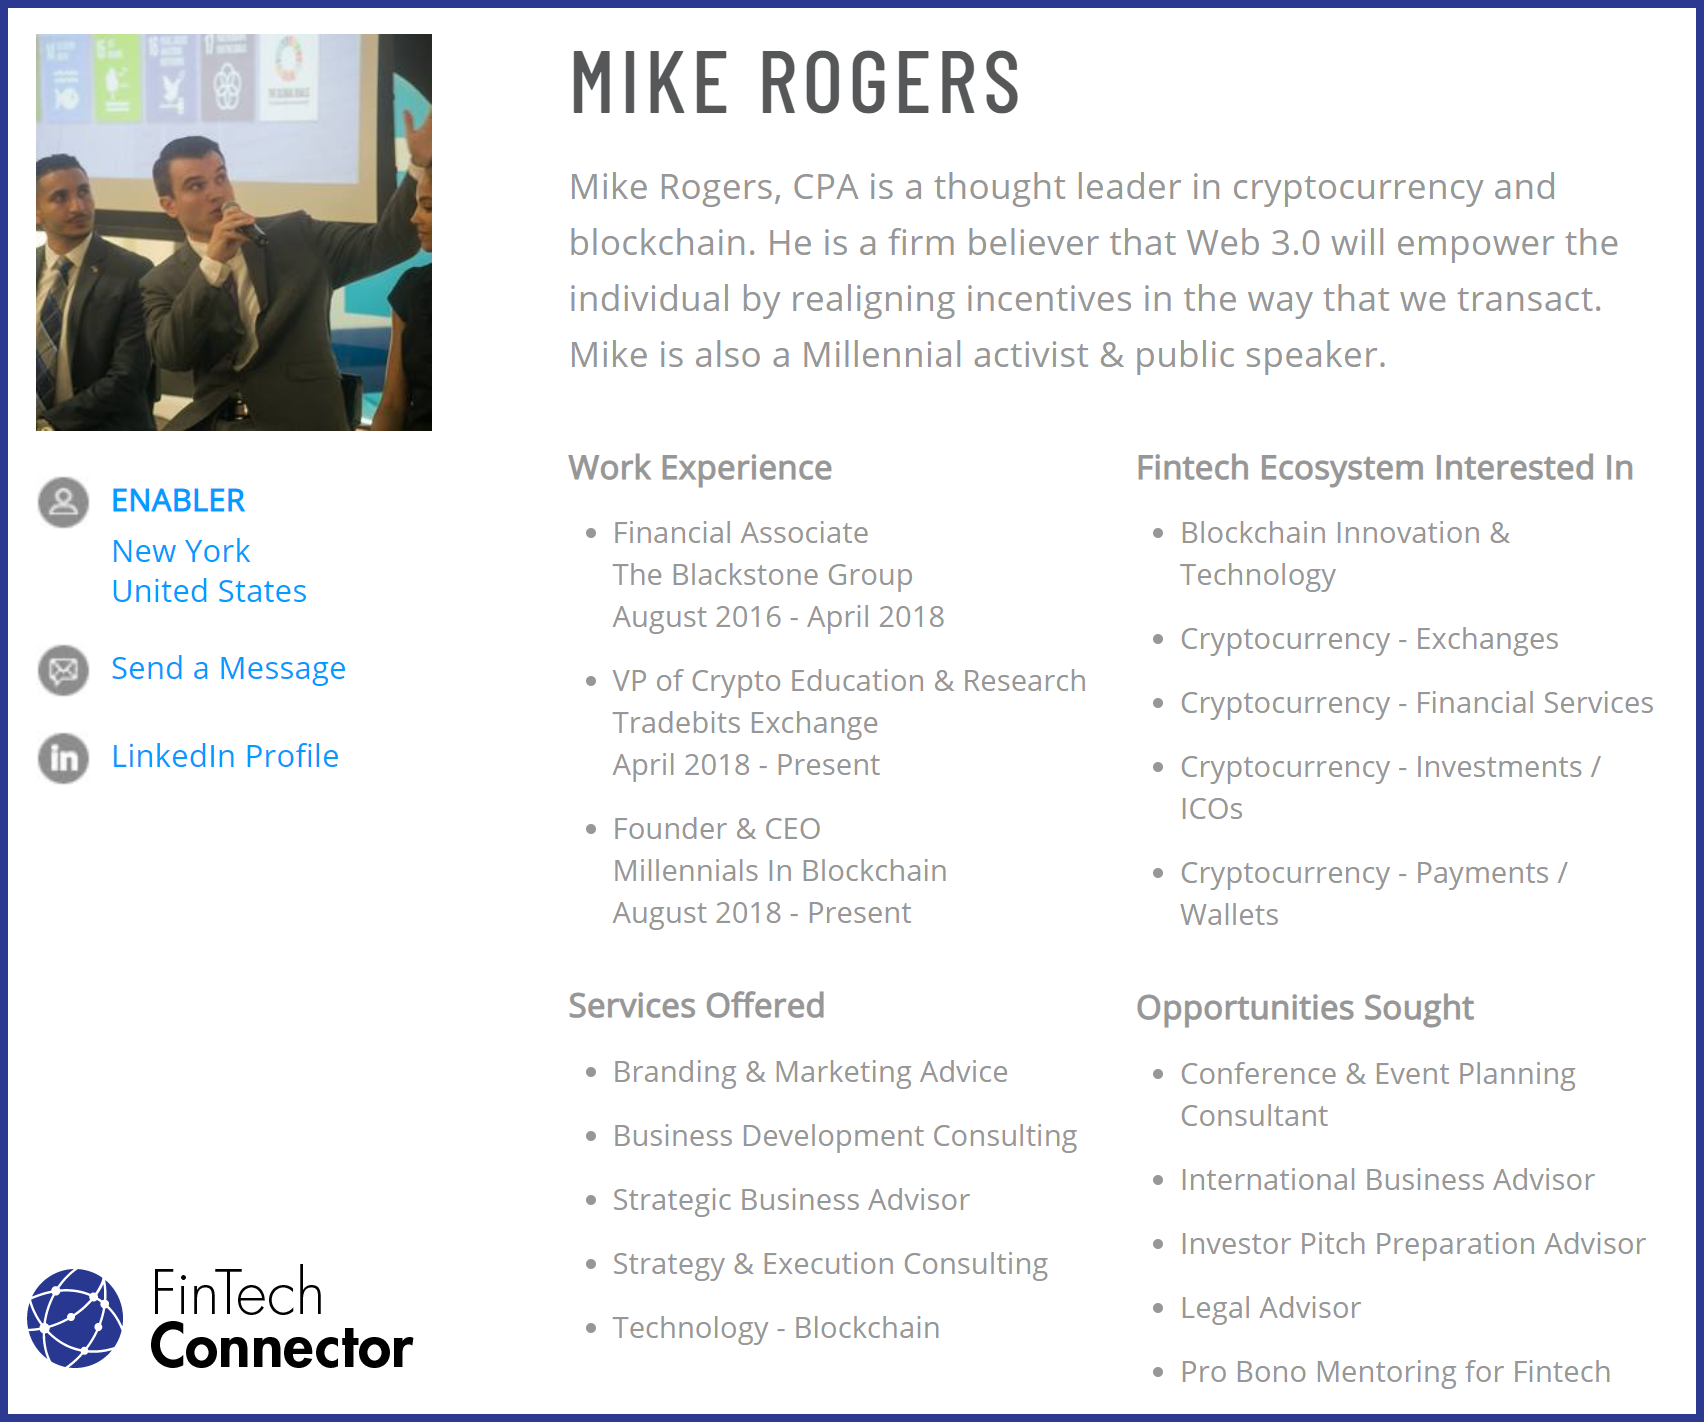 Connect with Mike Rogers via FinTech Connector